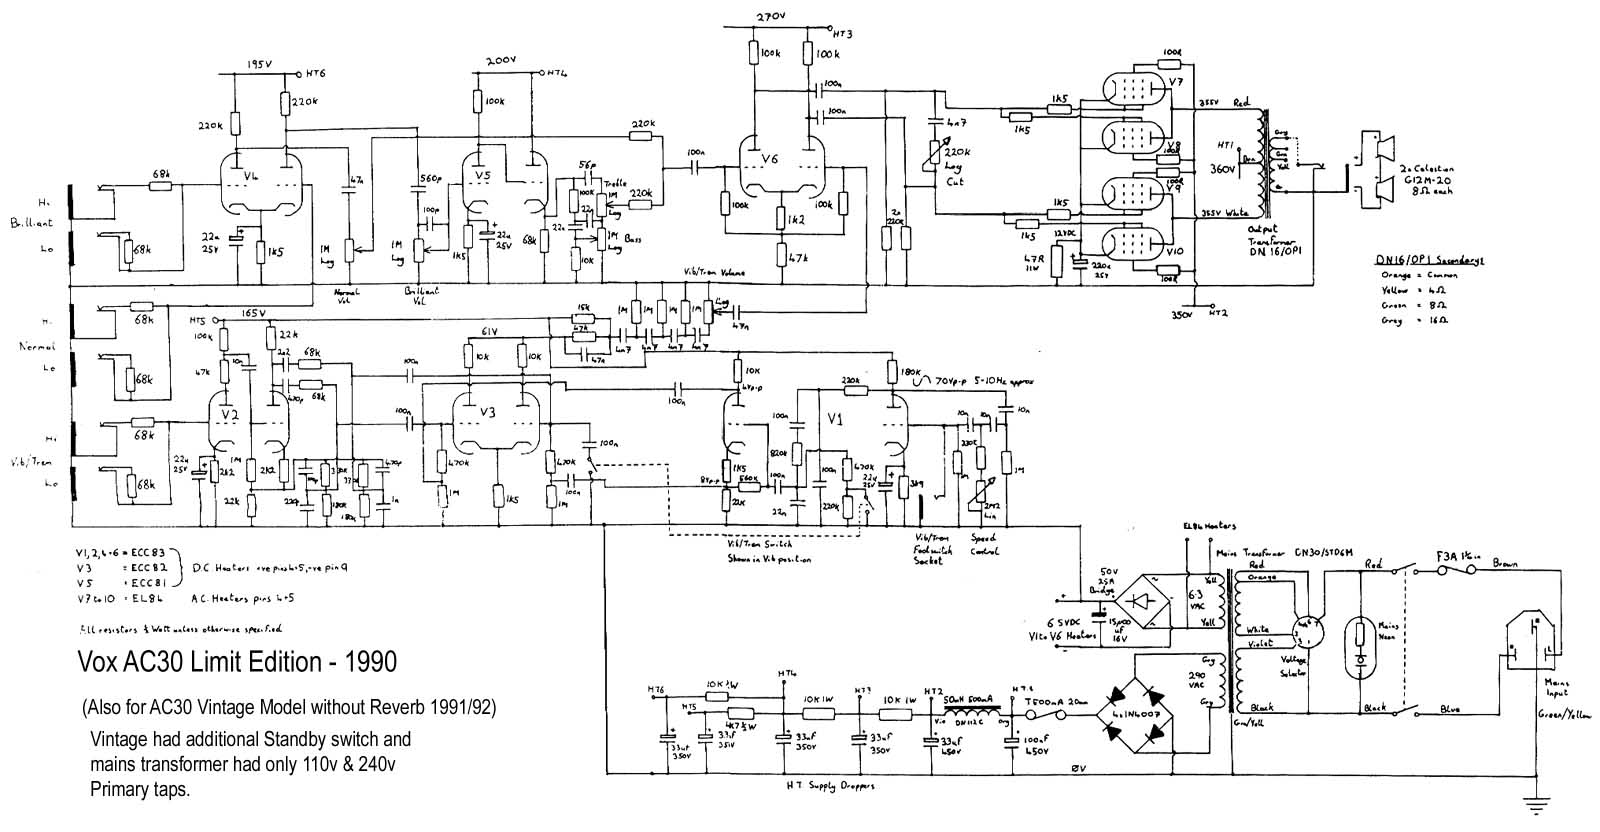 ac30. ac30 top boost limited edition model - 1990, [ download diagram ] ac30 h